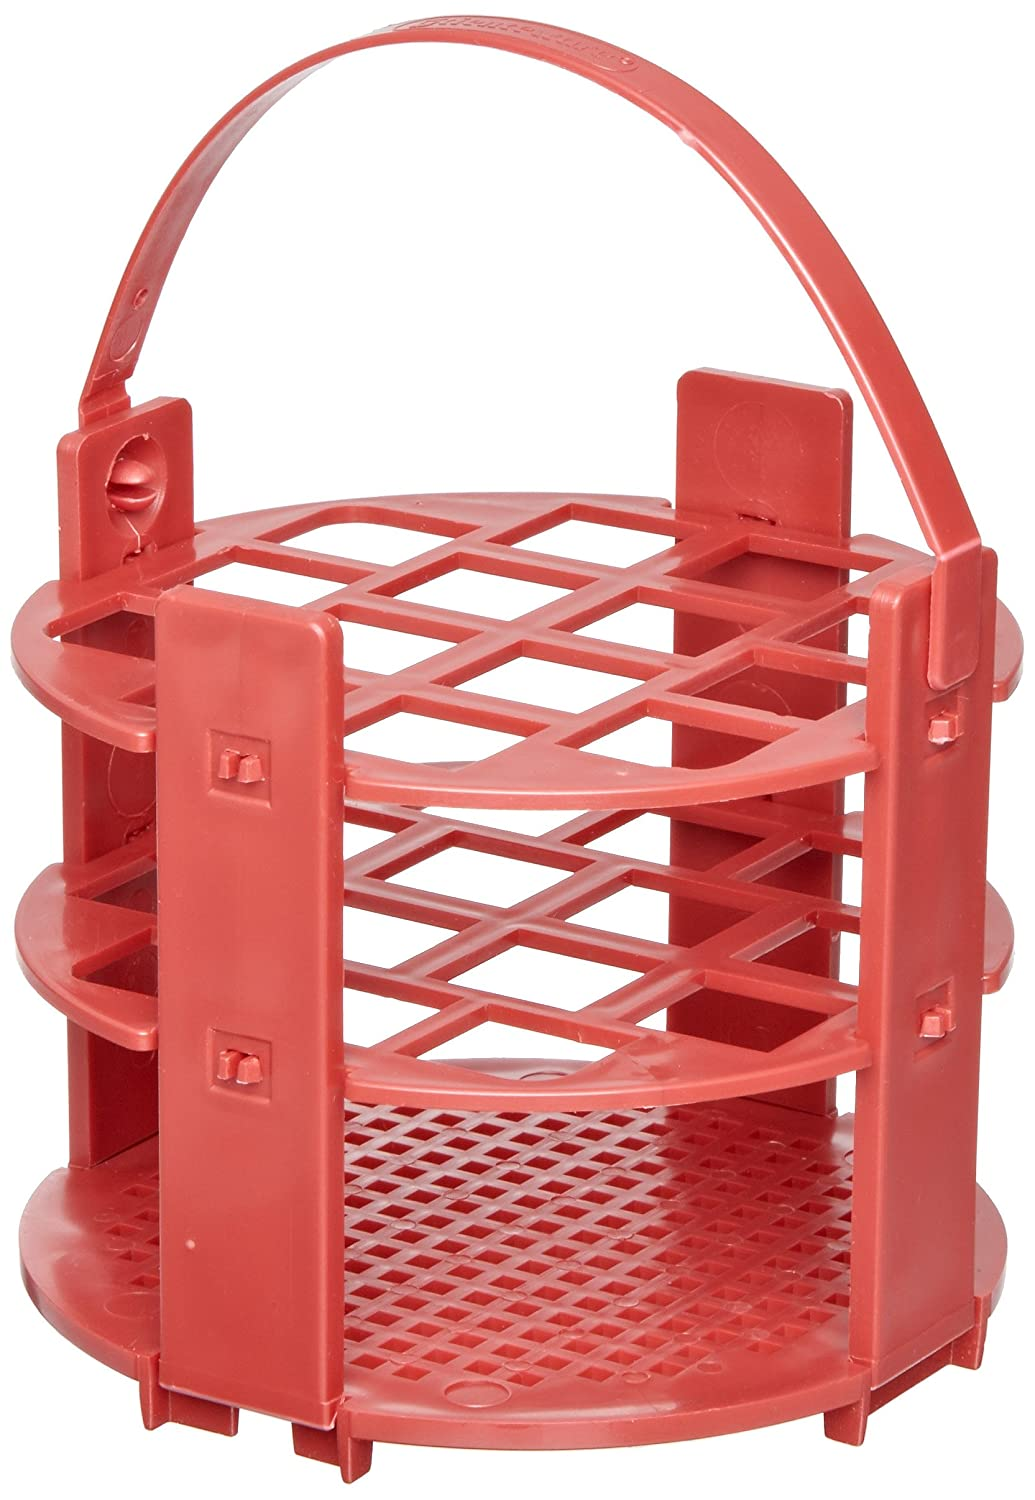 B002VA5UNE Bel-Art F18743-1016 No-Wire Round Test Tube Rack; 13-16mm, 14 Places, Red, Polypropylene 81LNpO-E0IL